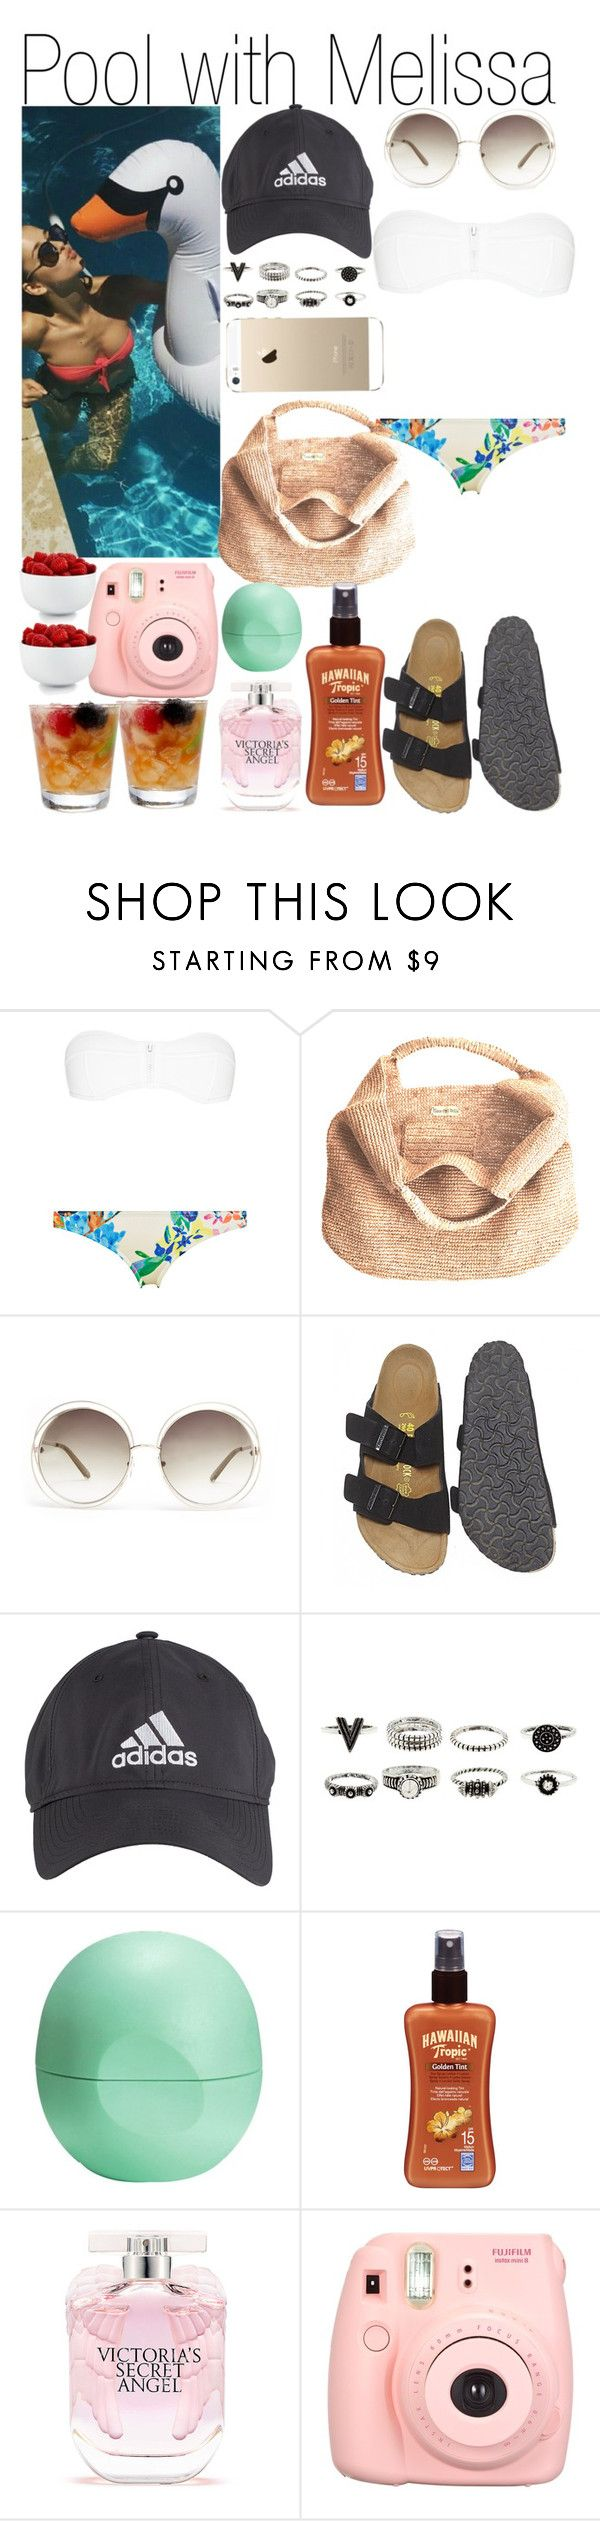 """Pool with Melissa"" by kiksfashion ❤ liked on Polyvore featuring Flora Bella, Chloé, Birkenstock, adidas, Eos, Hawaiian Tropic, Victoria's Secret, The Cellar, women's clothing and women's fashion"